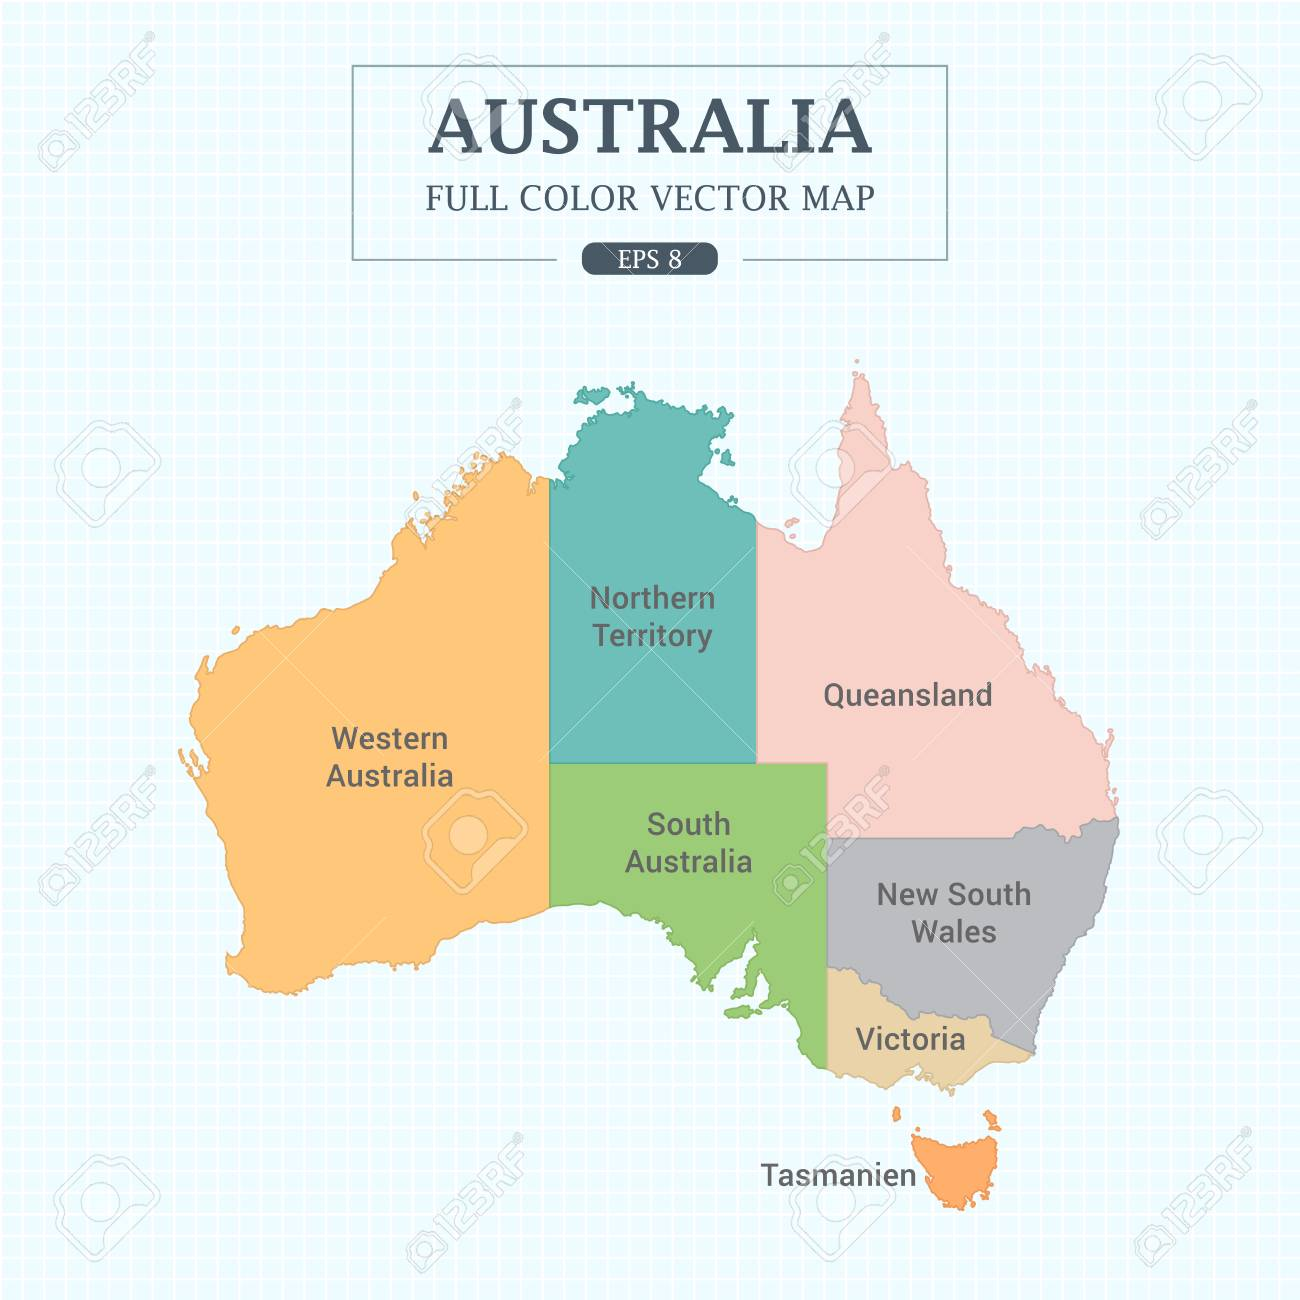 Australia Map Full Color High Detail Separated All States Vector